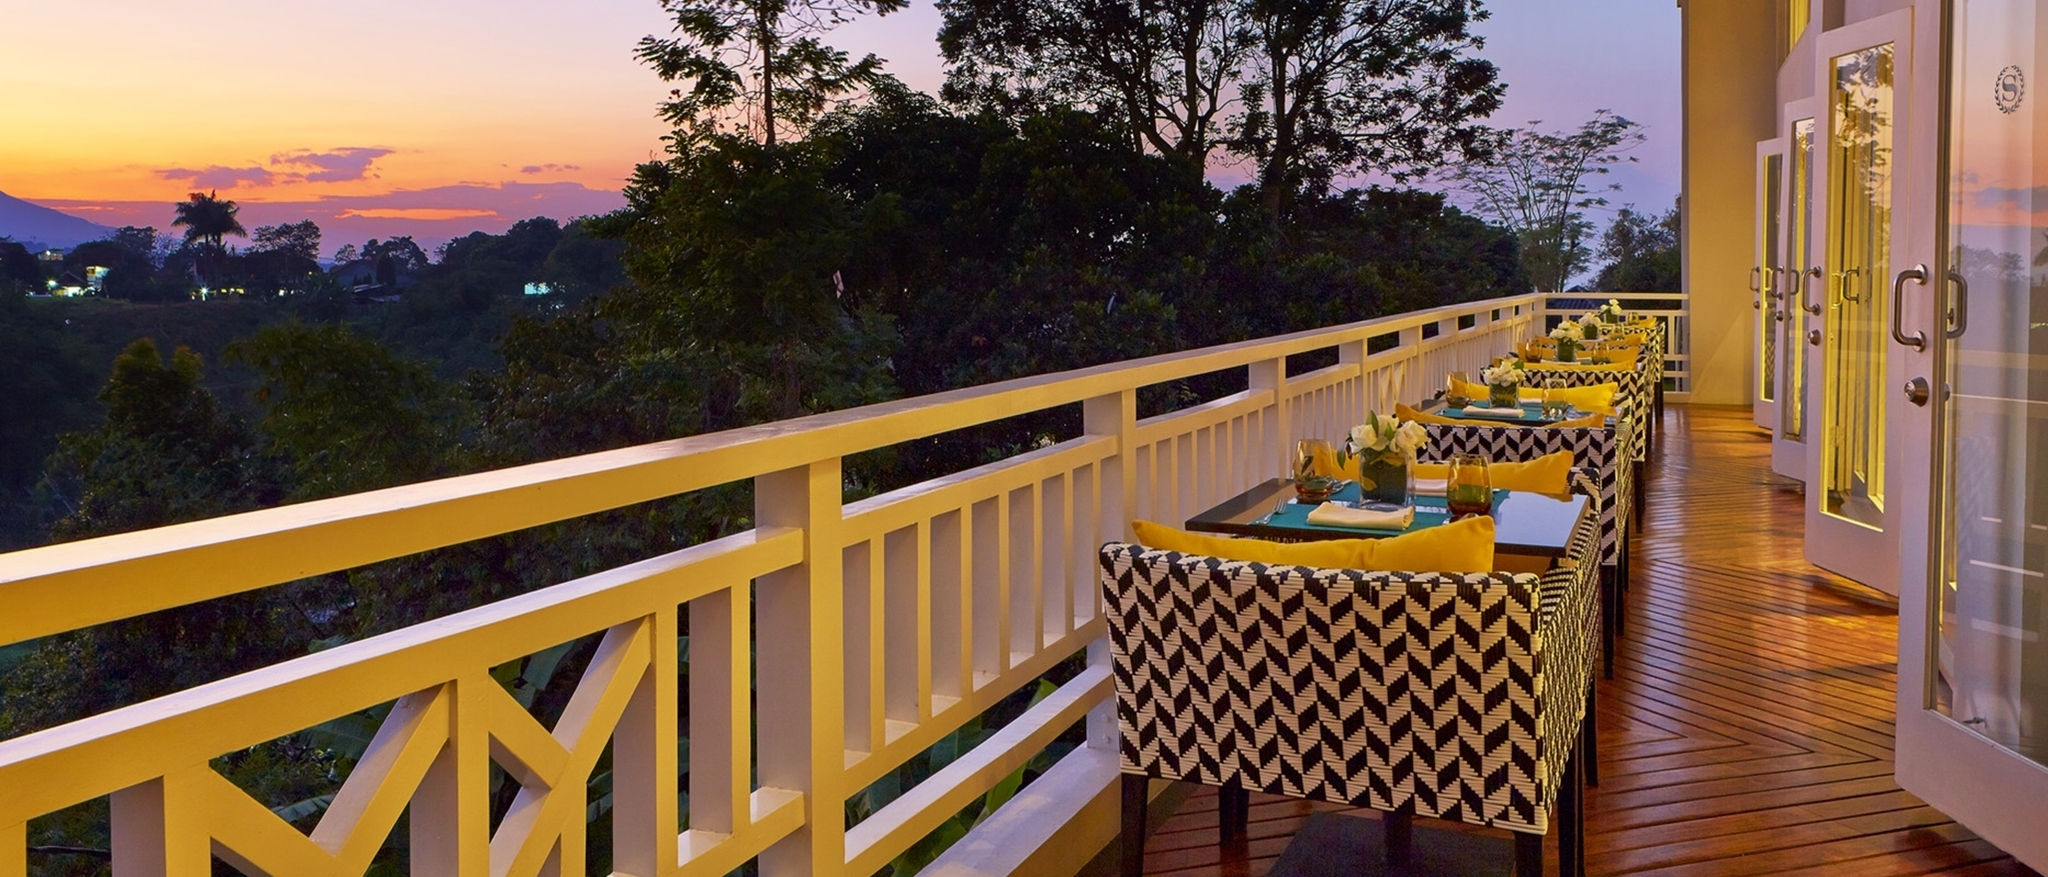 Romantic Towers Lounge Balcony